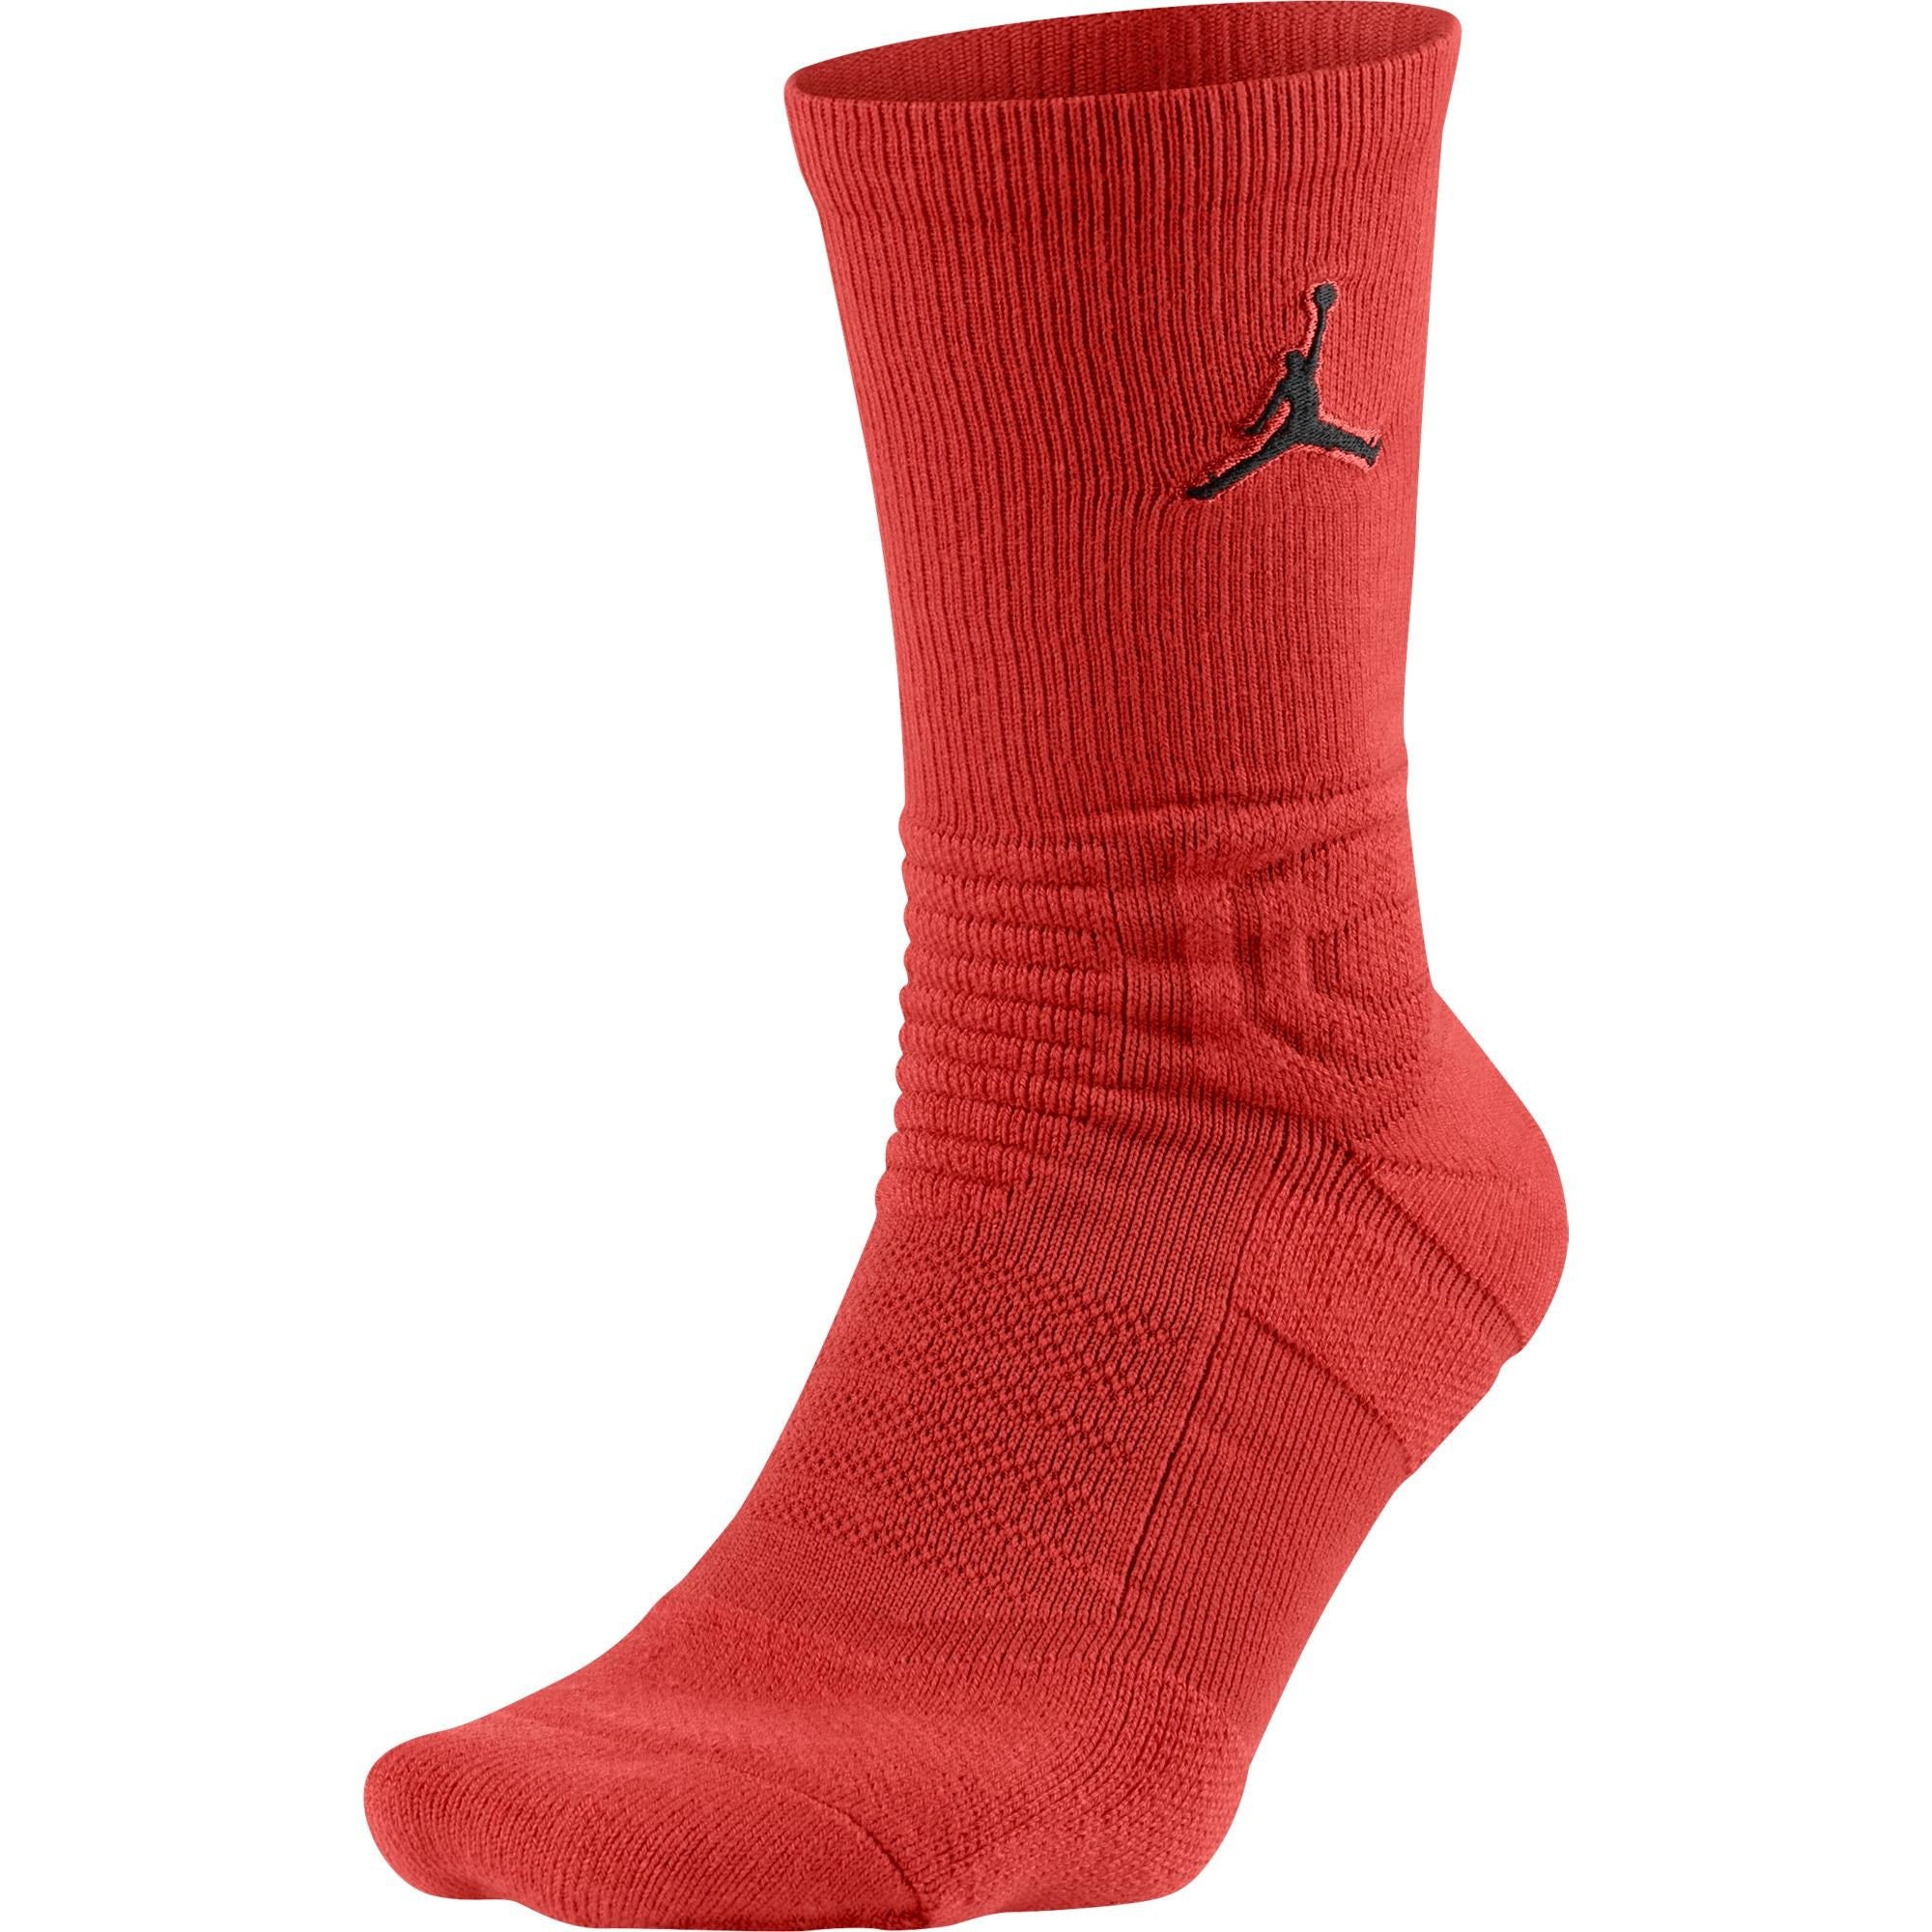 Nike Jordan Ultimate Flight Crew 2.0 Basketball Socks - NK-SX5854-812